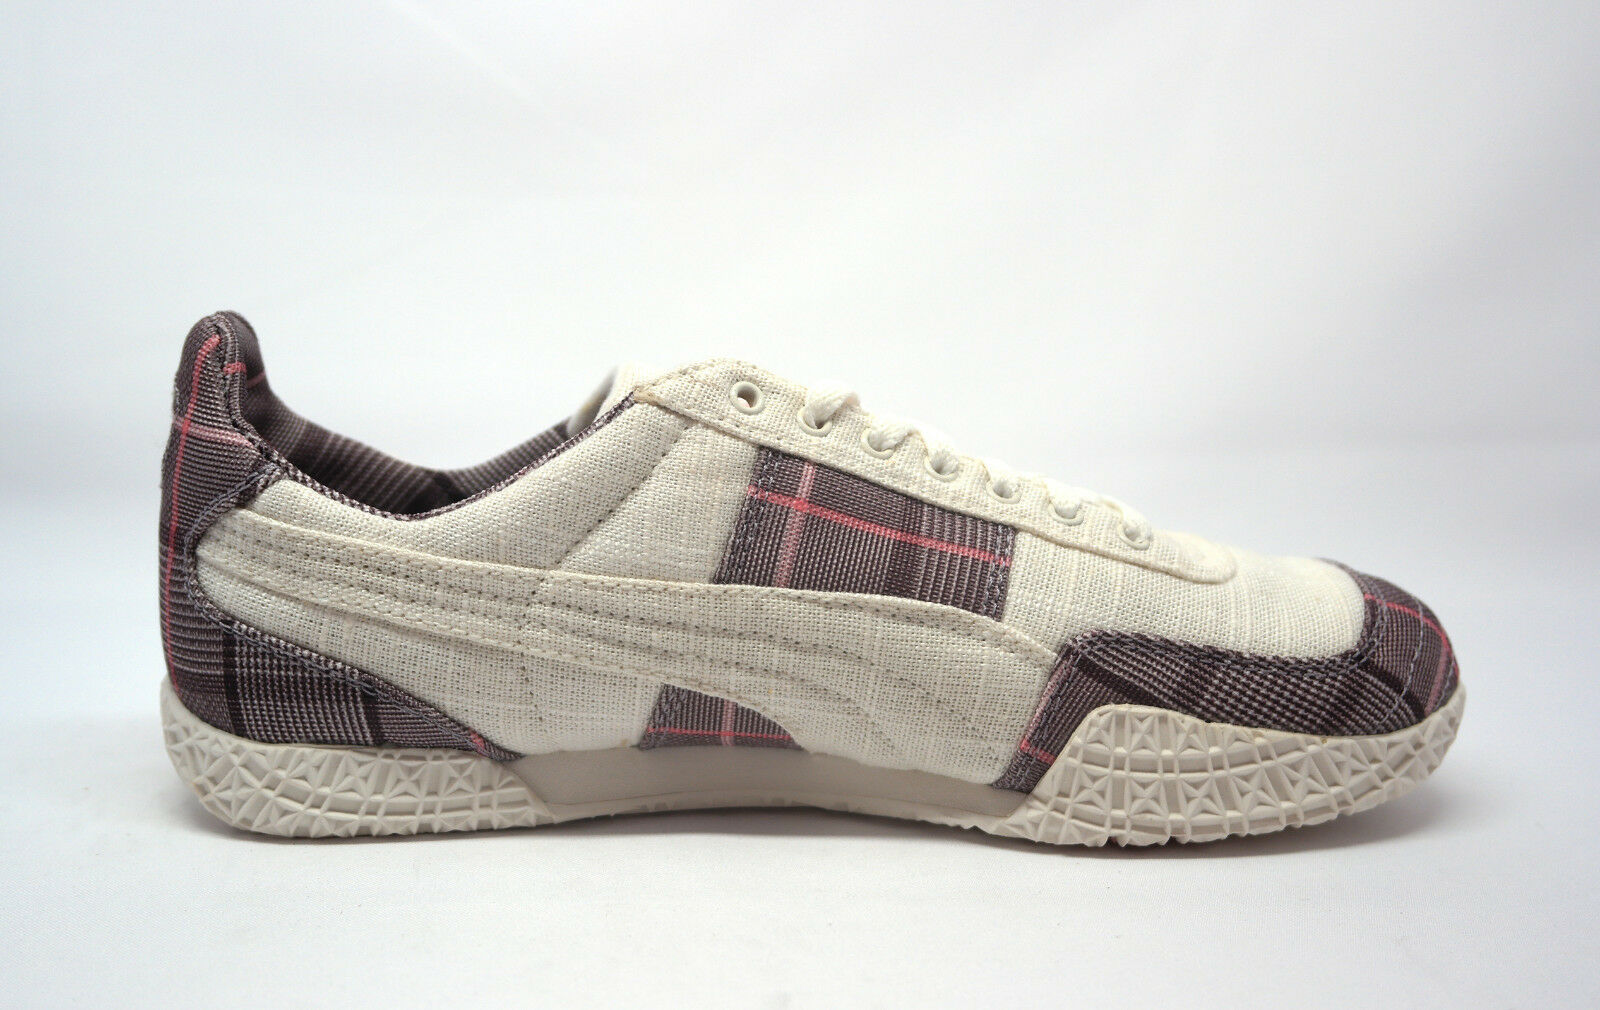 Puma Wmn's Special 2871 Prep Casual shoes 345846 02 02 02 Women's US 7.5 available e0386e